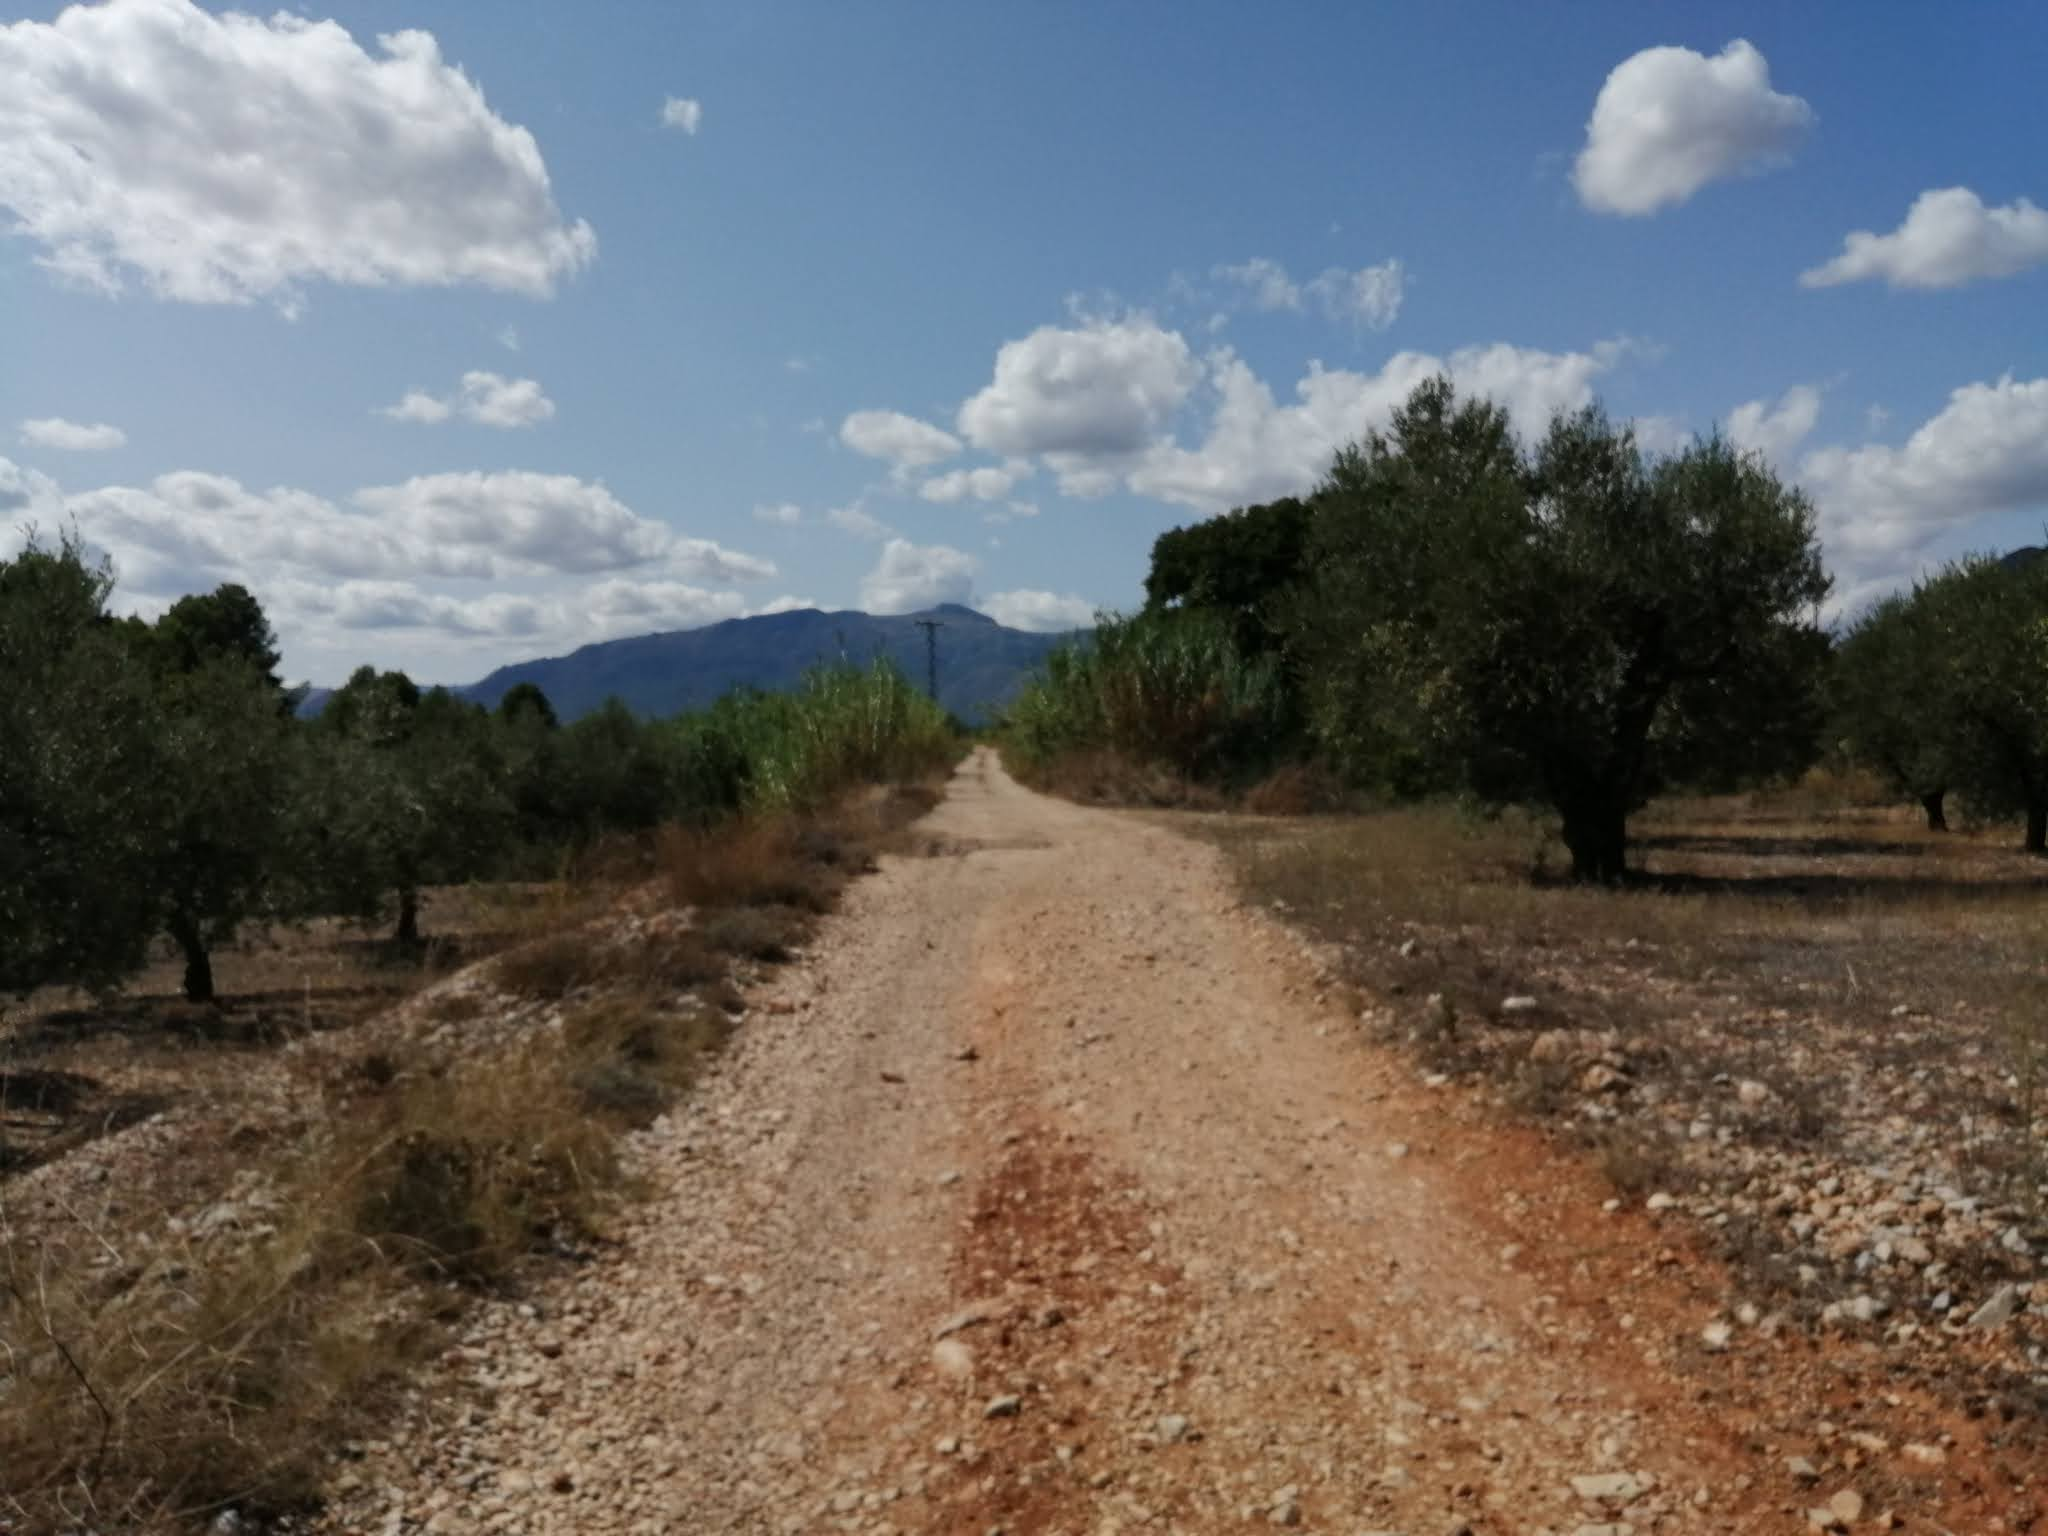 The Serpis Greenway direction Gaianes, Alicante